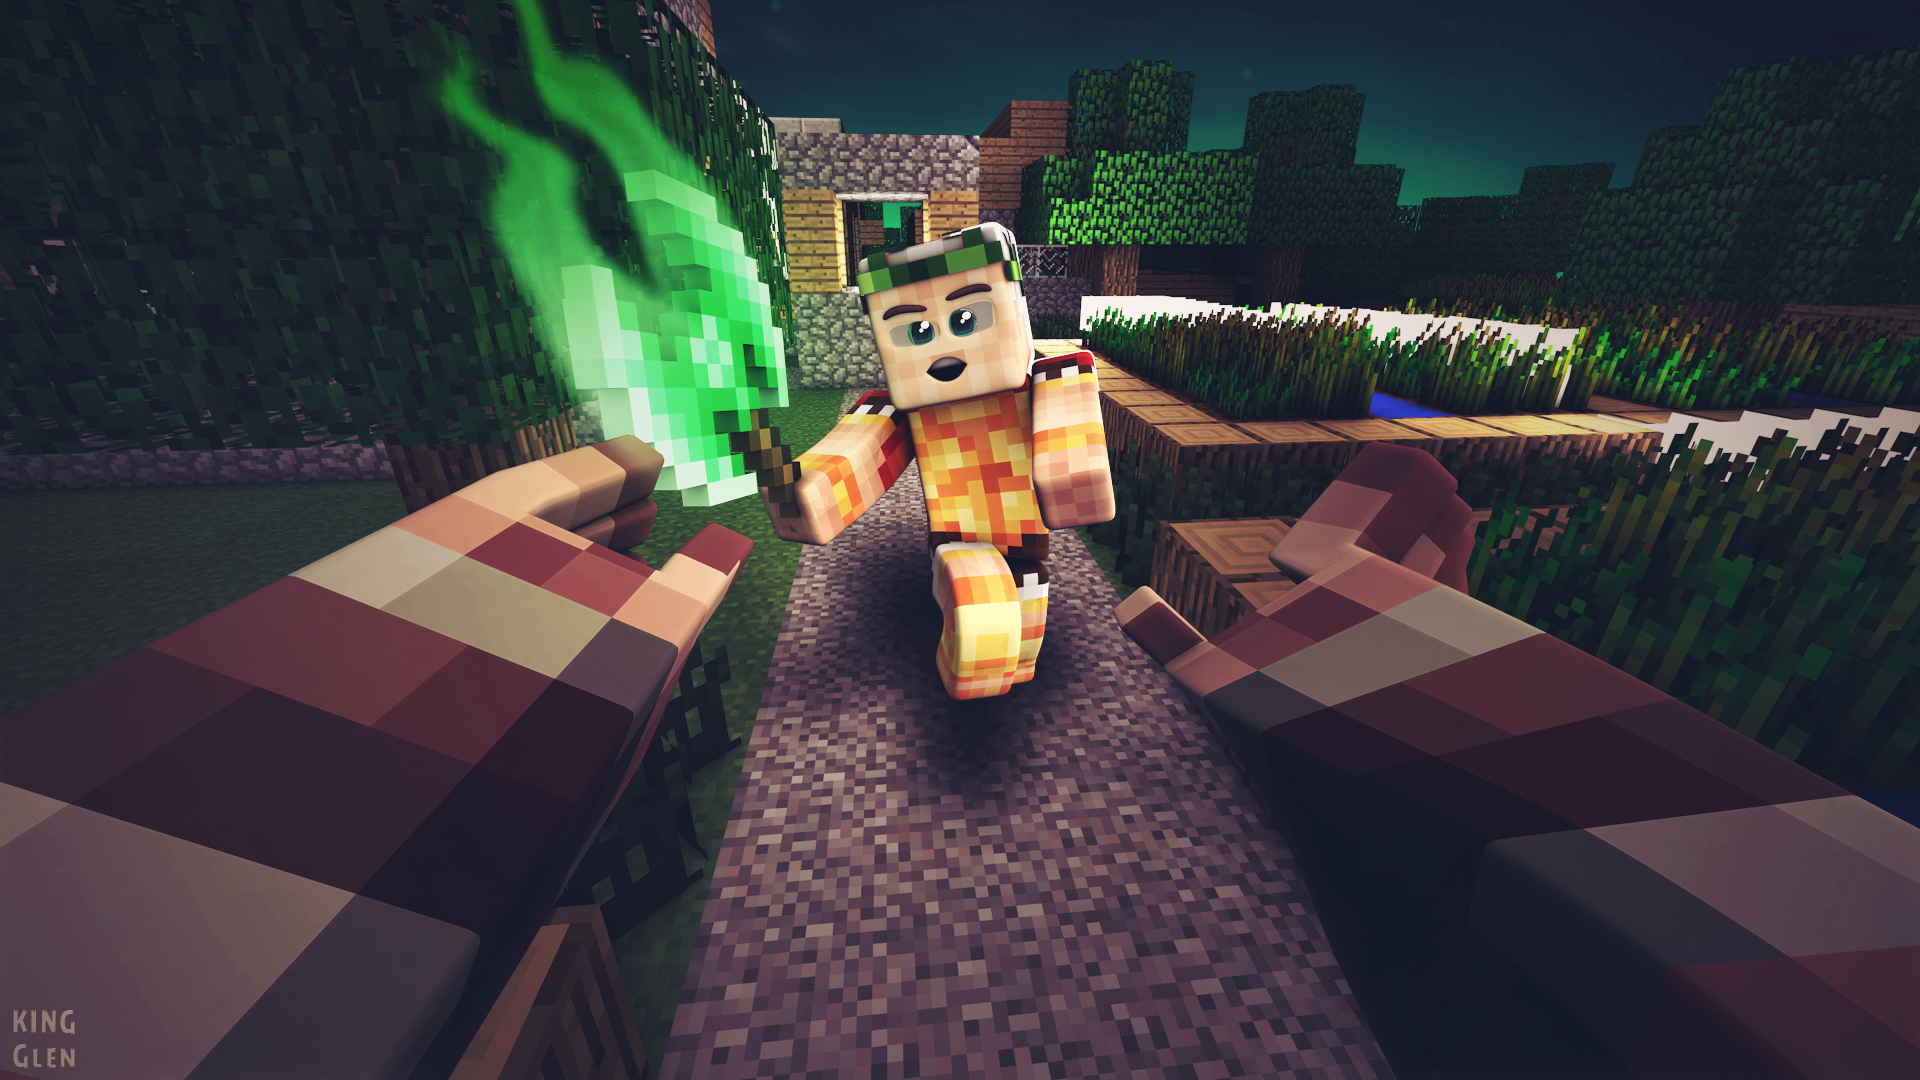 Wonderful Wallpaper Minecraft King - Wallpaper_1477847374  Pictures_628957.png